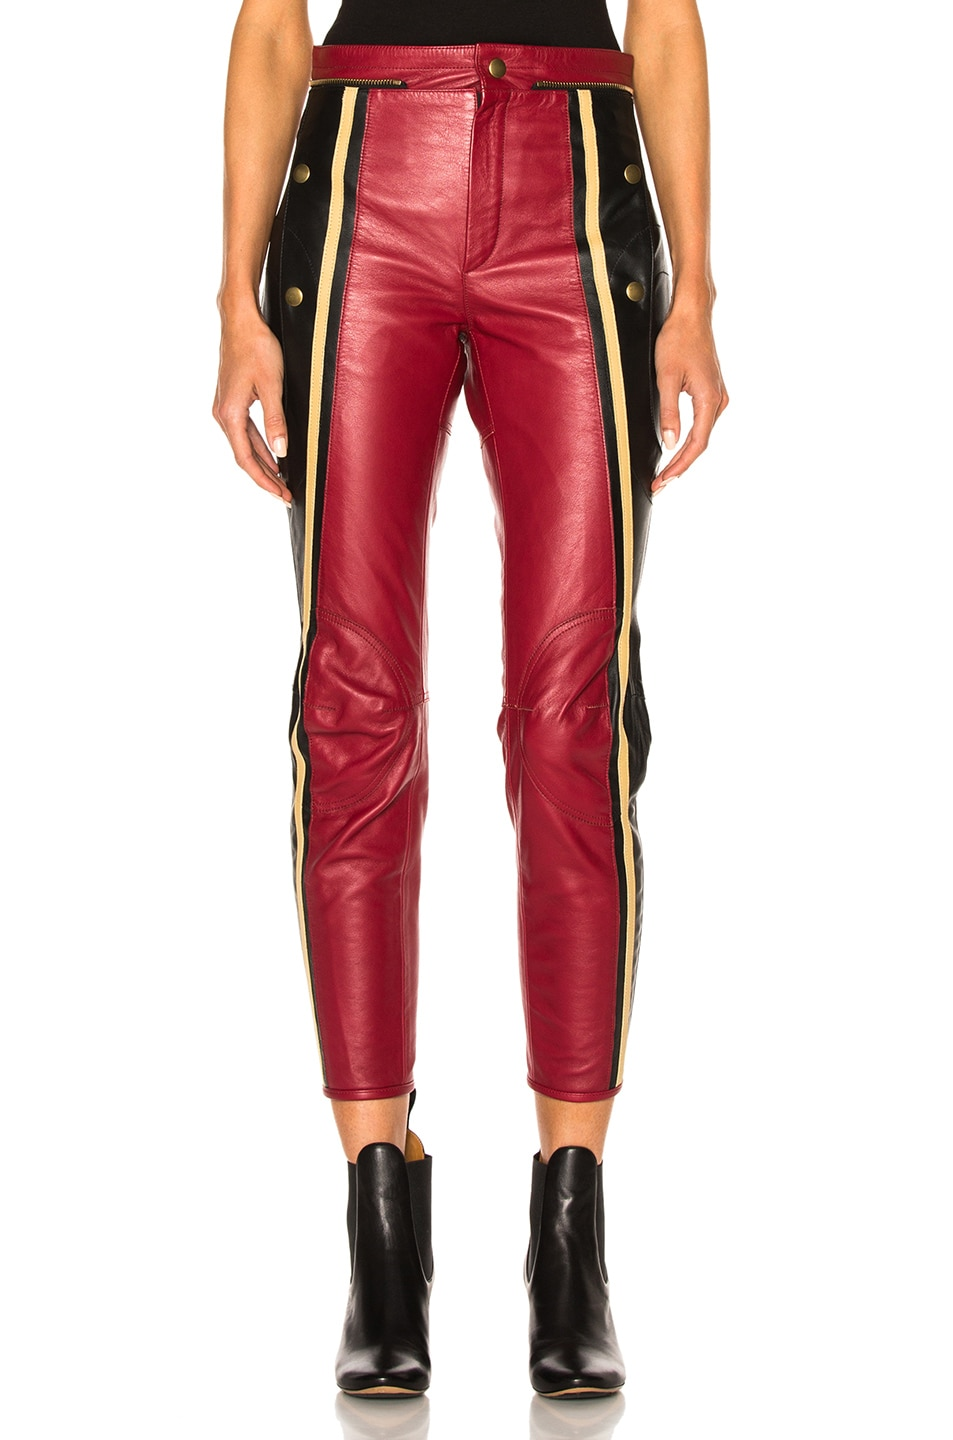 Nubuck Leather Pants - Sex Movies Pron-3736